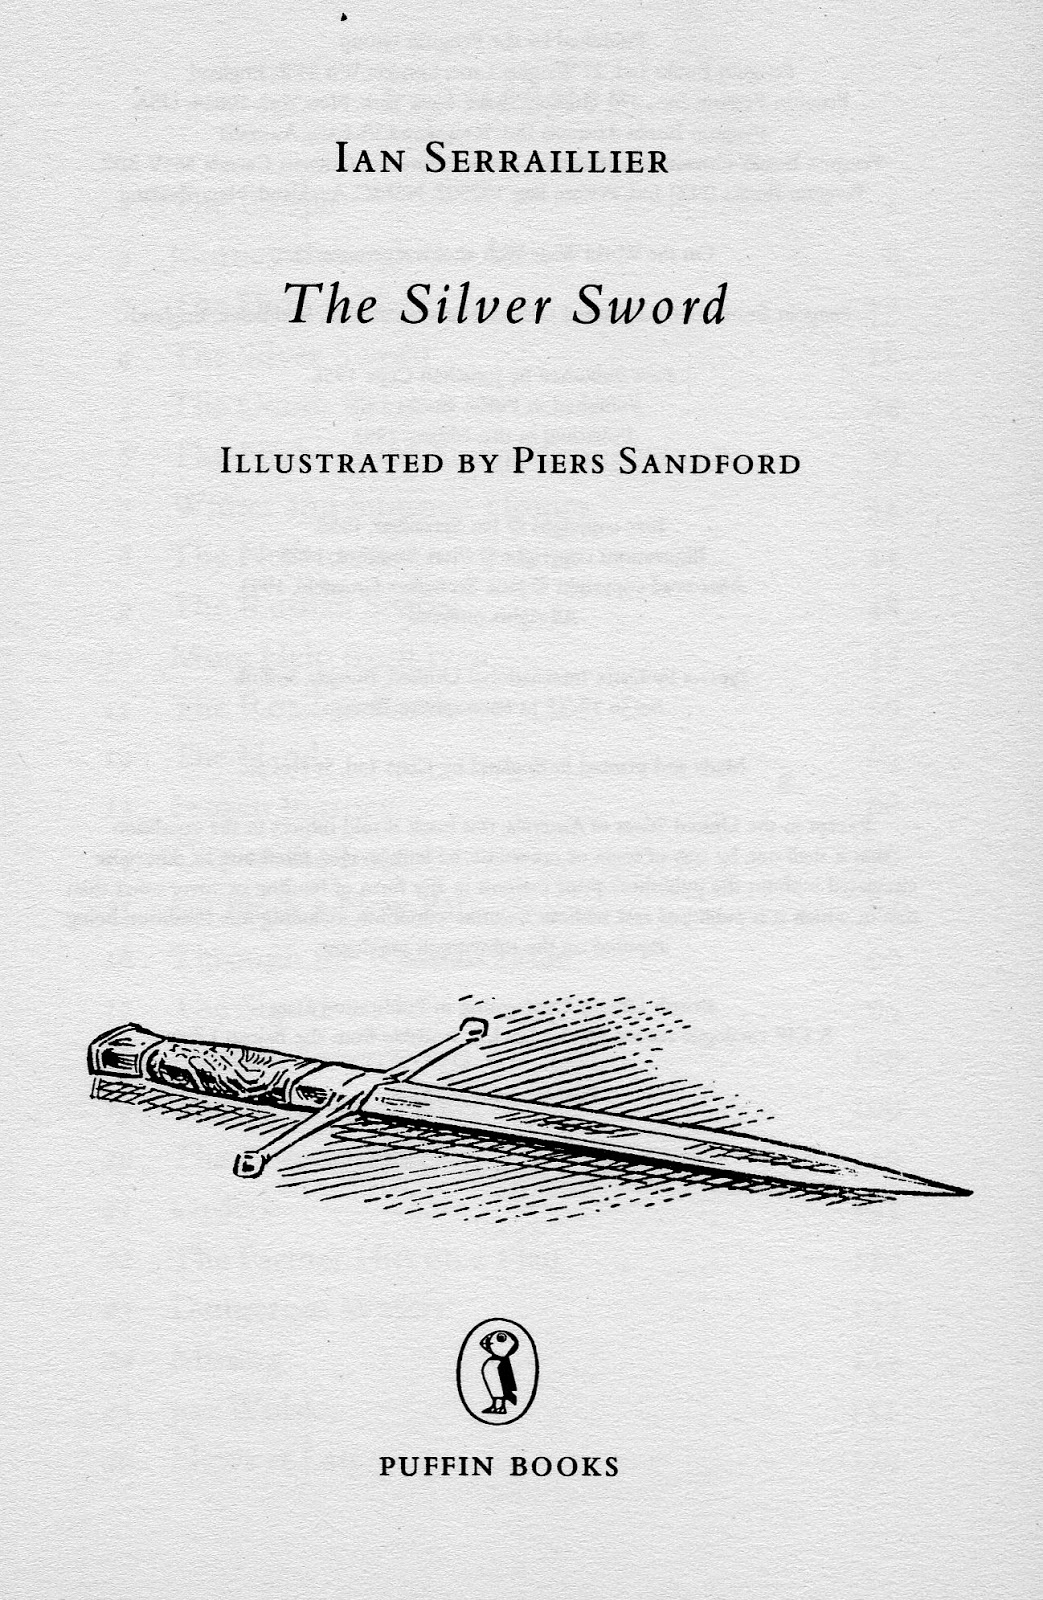 the silver sword essay The silver sword essay themes | luwislinenglishblog2012 in the silver sword you read about the importance of three main values the main characters ruth.